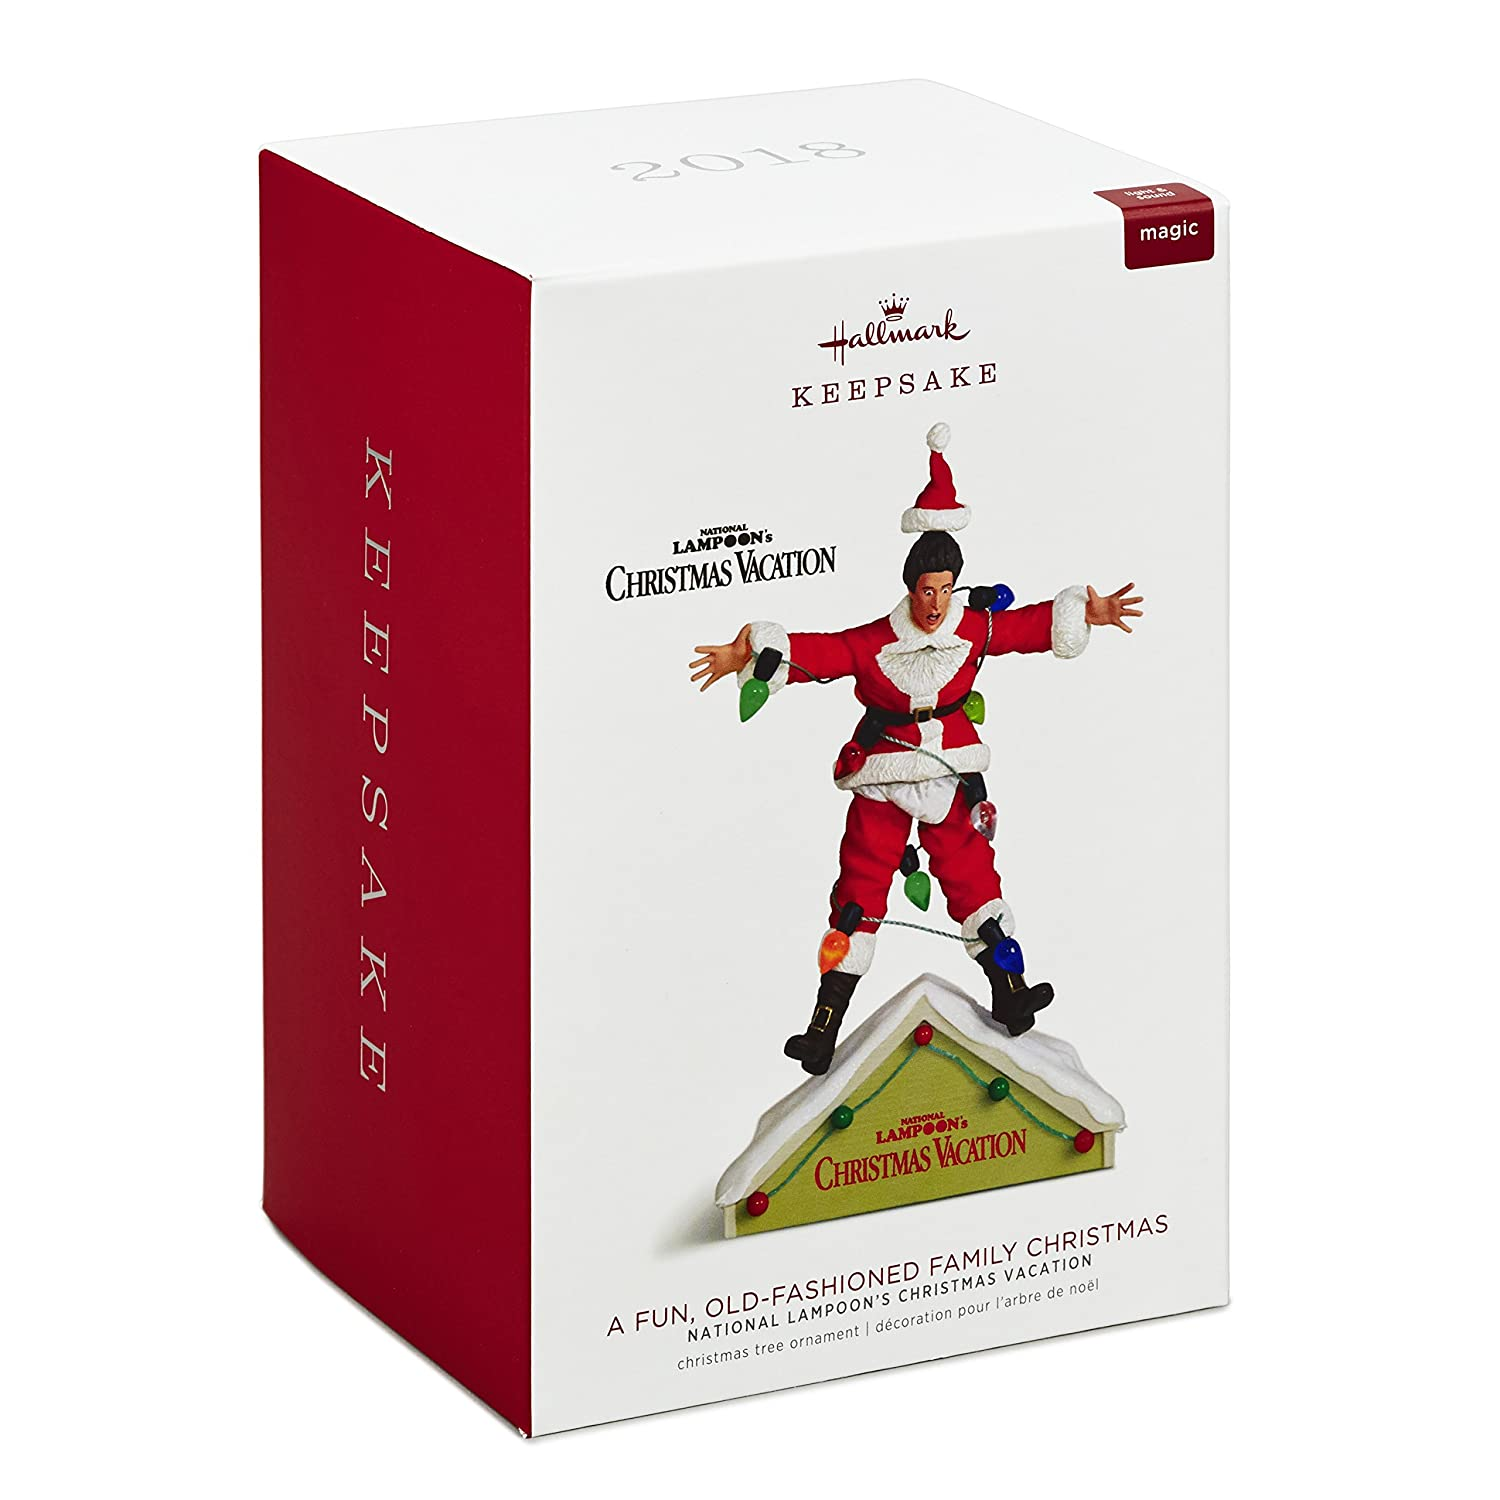 Amazon.com: Hallmark Keepsake Christmas Ornament 2018 Year Dated ...